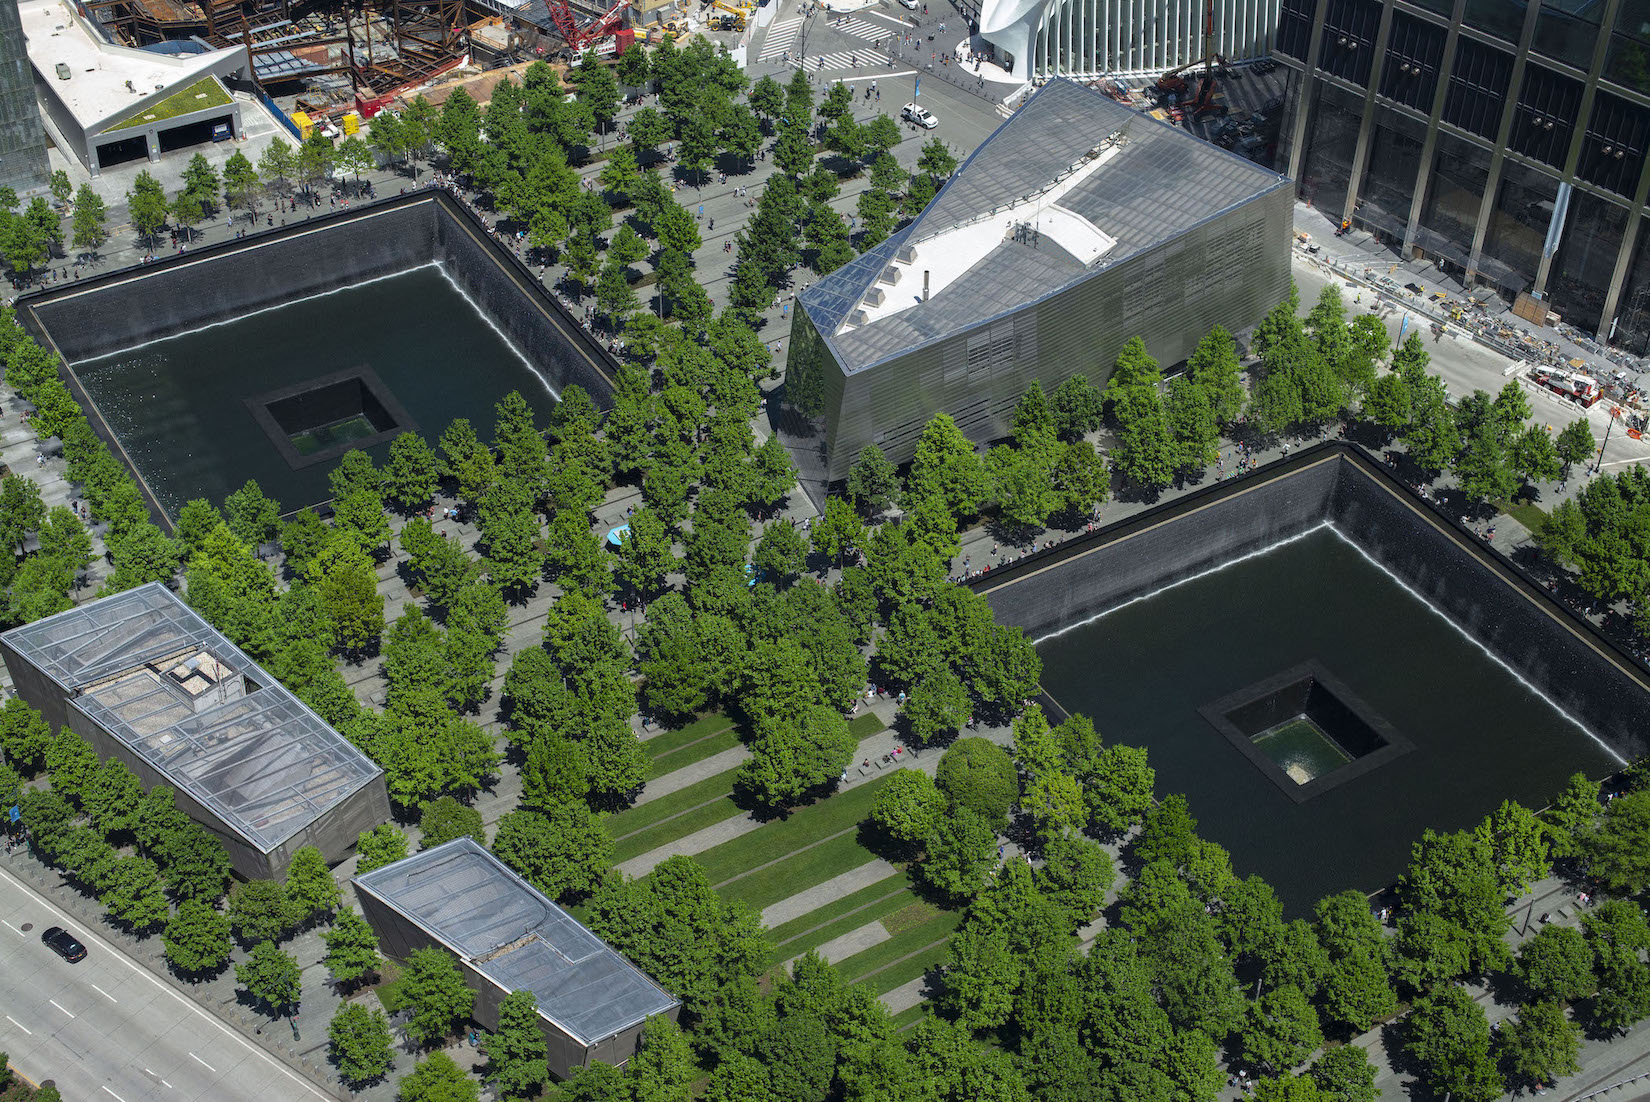 Memorial Plaza is seen from above on a sunny day. Dozens of oak trees fill the Plaza with a vivid green. These trees surround the two reflecting pools where the North and South towers once stood. Between the large, square pools is the Museum's glass and steel pavilion.